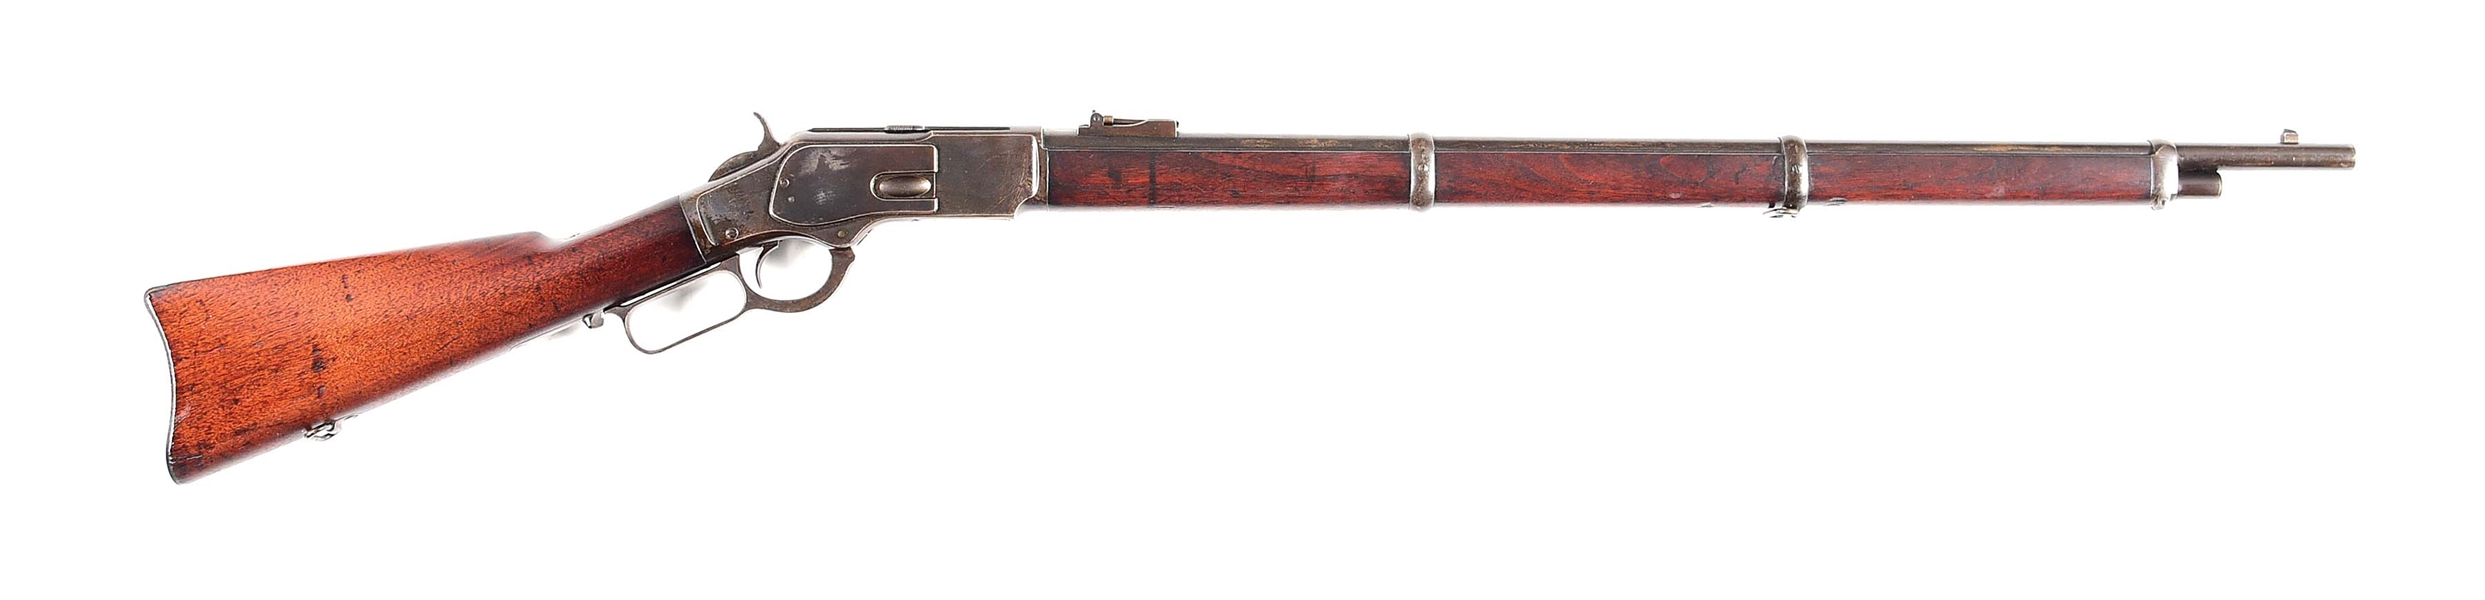 (A) WINCHESTER MODEL 1873 MUSKET LEVER ACTION RIFLE (1891).